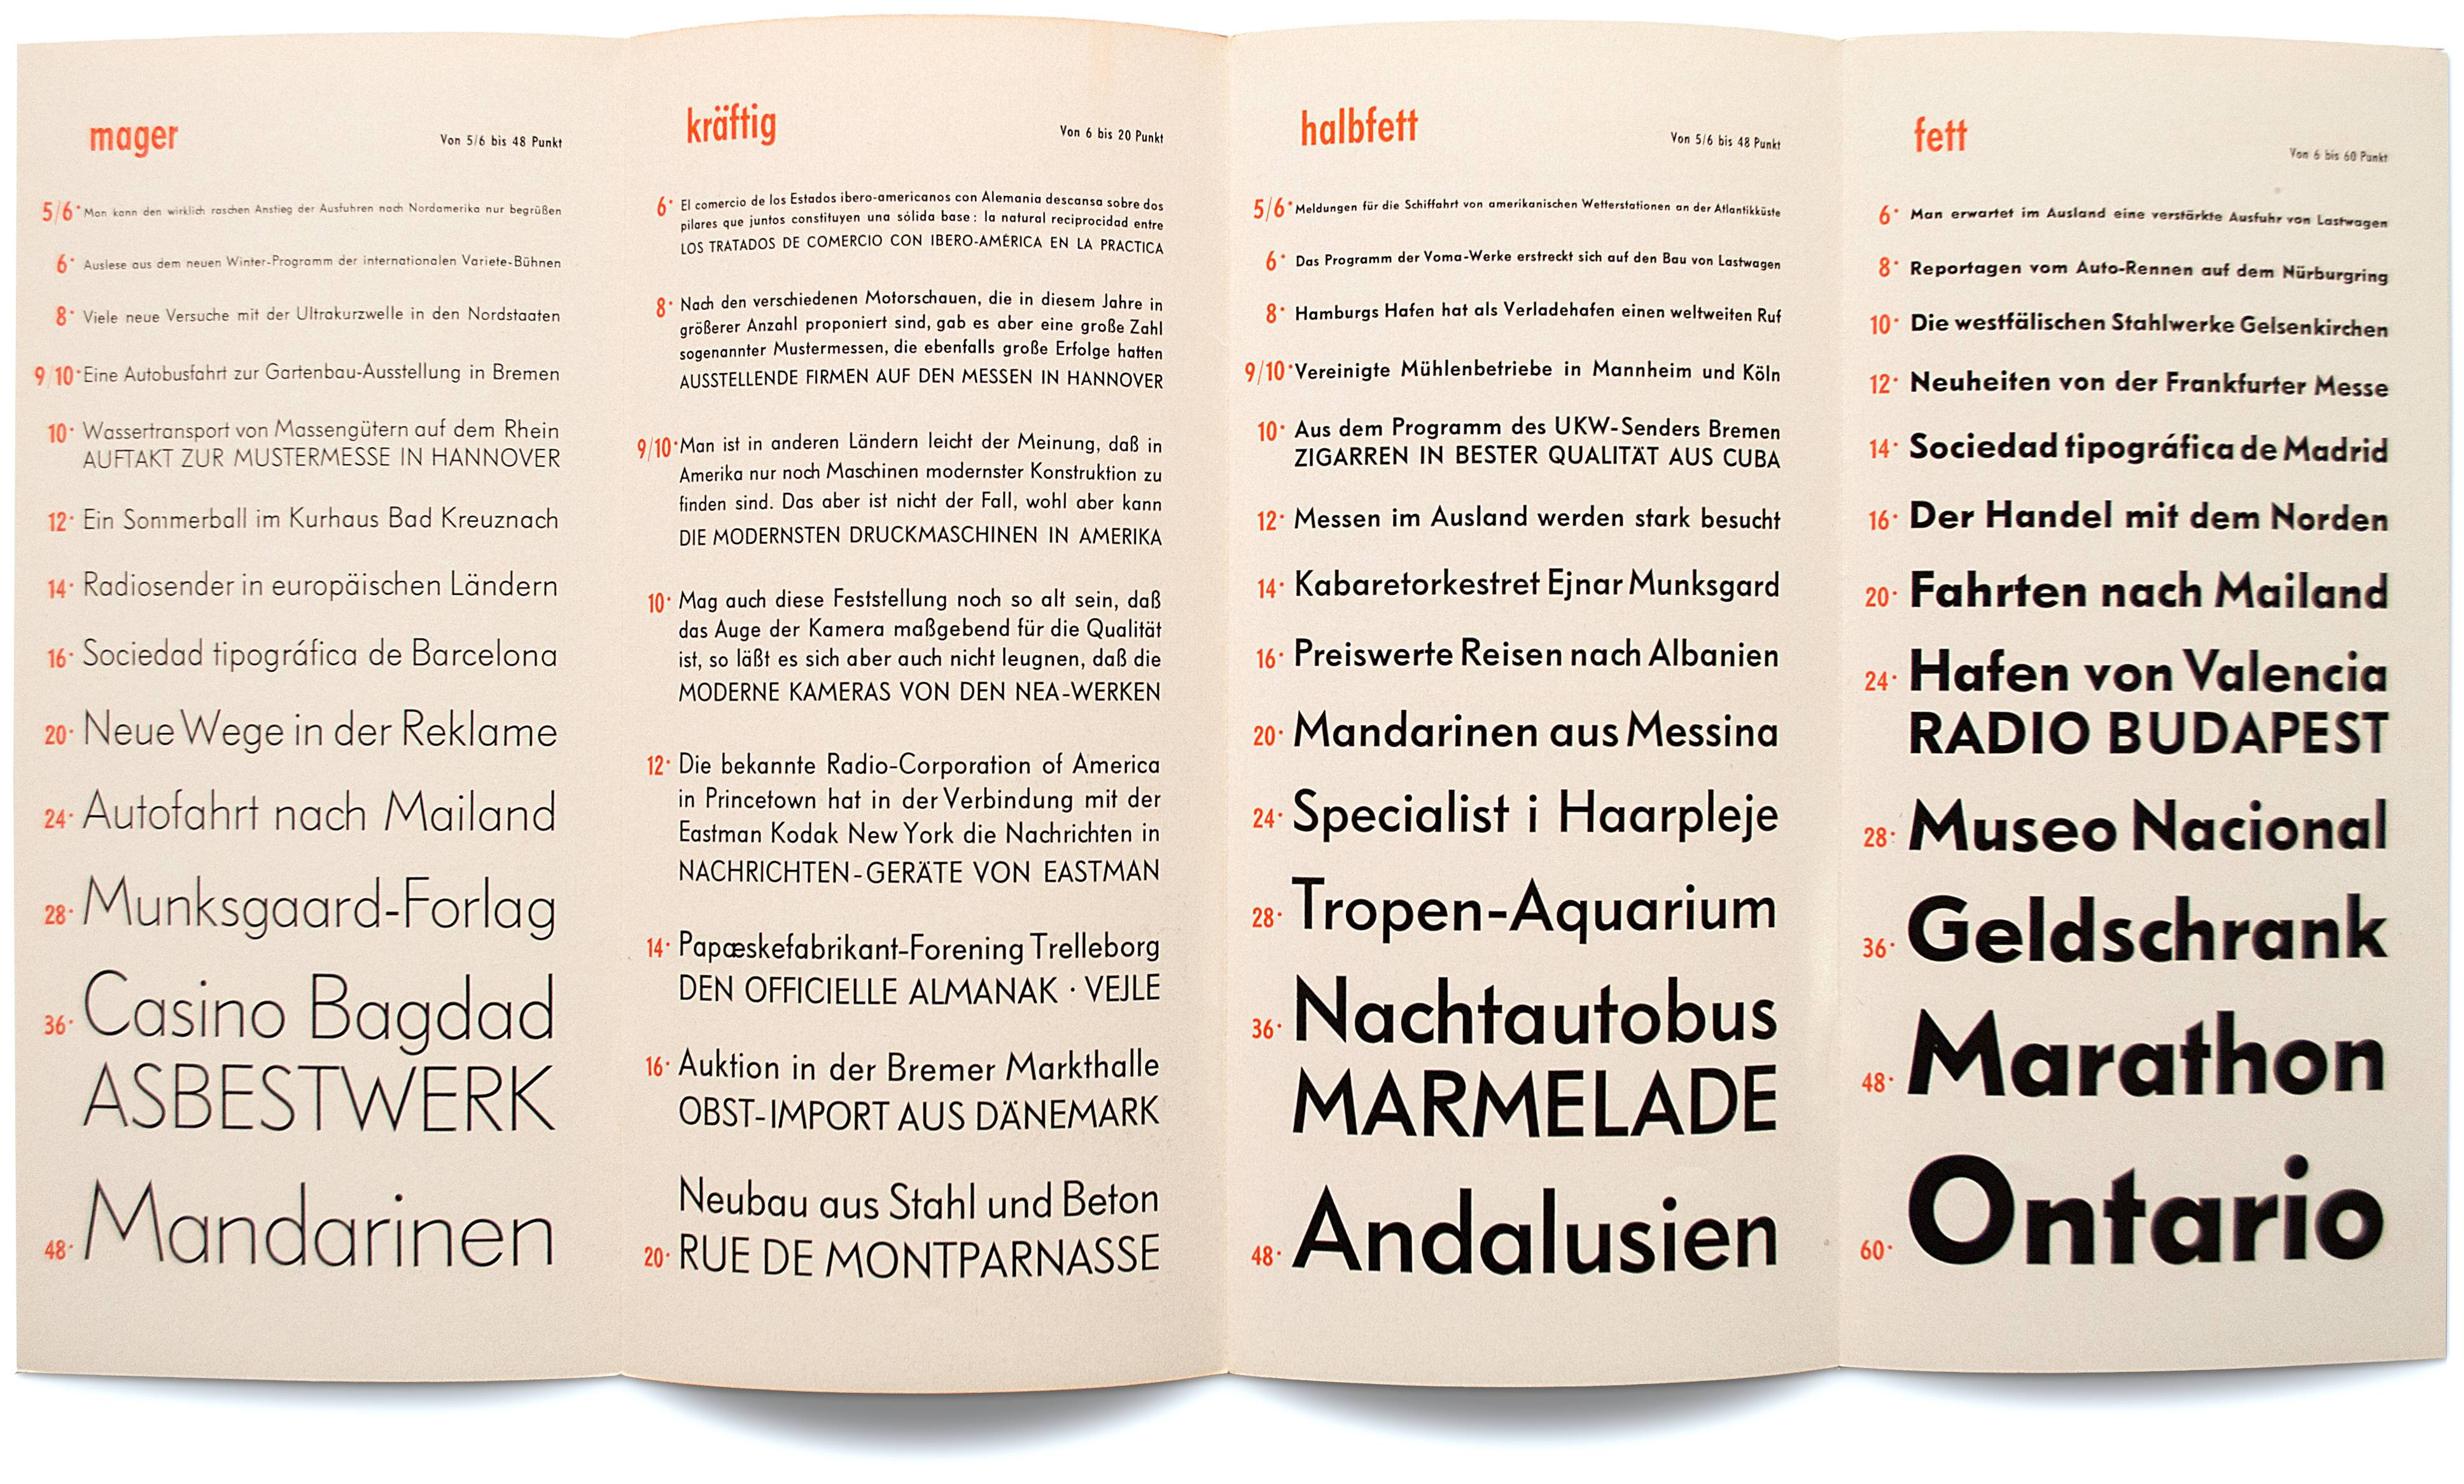 Equipped with a two-story 'a' as well as flat instead of pointing letter shapes on 'A', 'M', 'N', 'V' and 'W', Genzsch-Grotesk was born as Friedrich-Bauer-Grotesk's sister. Both typefaces were available and advertised simultaneously as seen here in two fold-out specimens. (With kind permission from Klingspor-Museum, Offenbach am Main.)